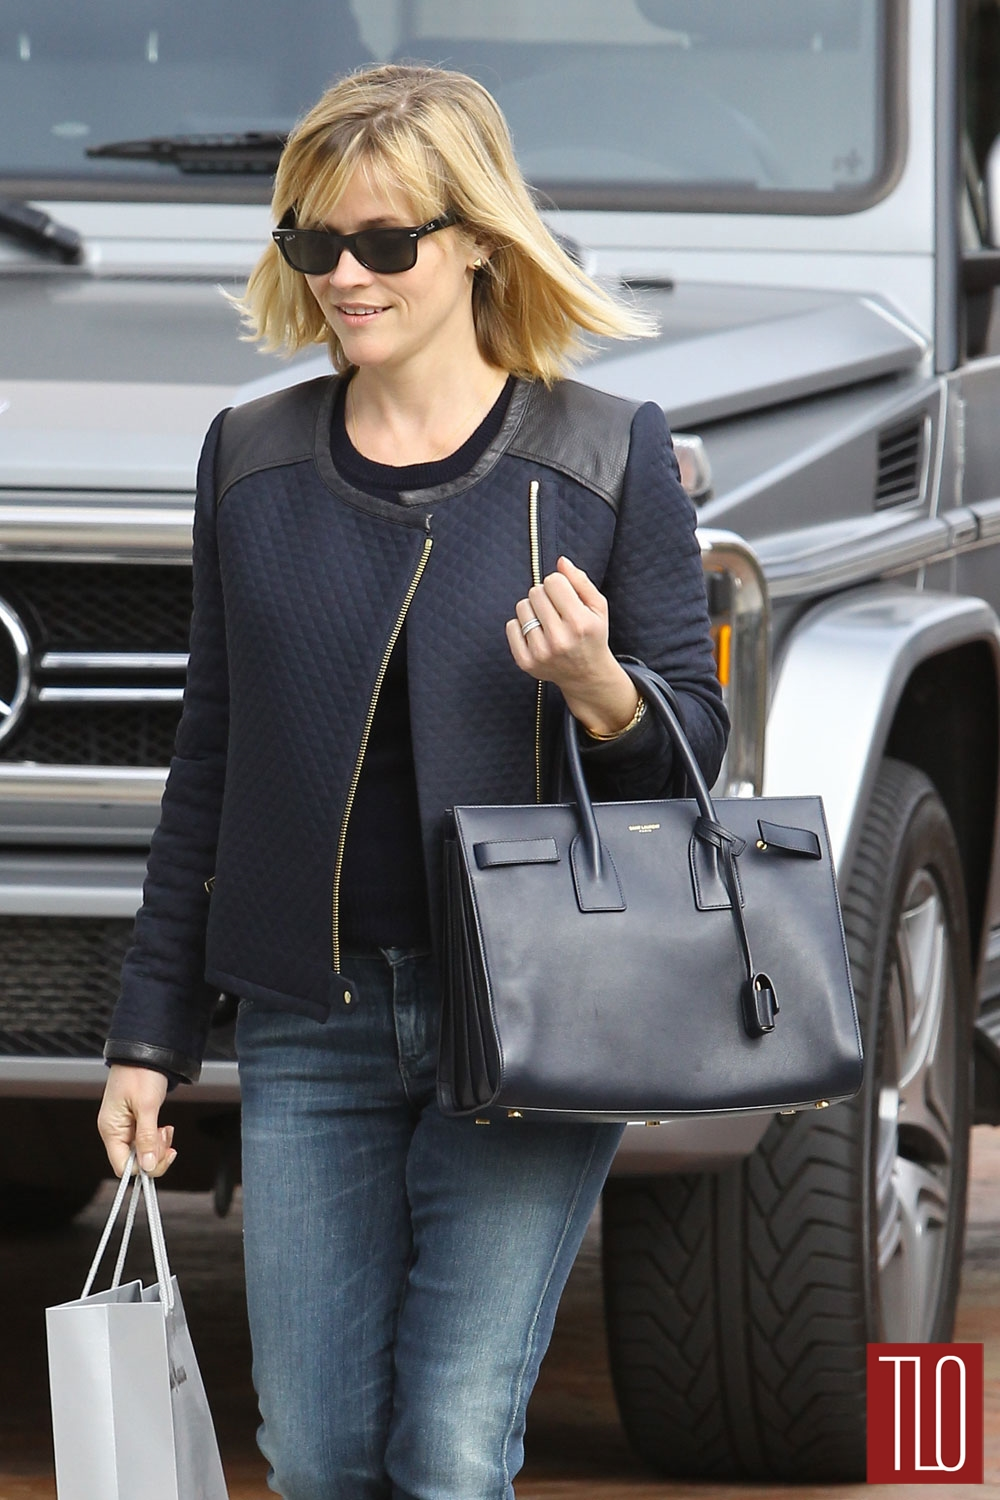 Reese-Witherspoon-Club-Monaco-Saint-Laurent-GOTS-Tom-Lorenzo-Site-TLO (1)